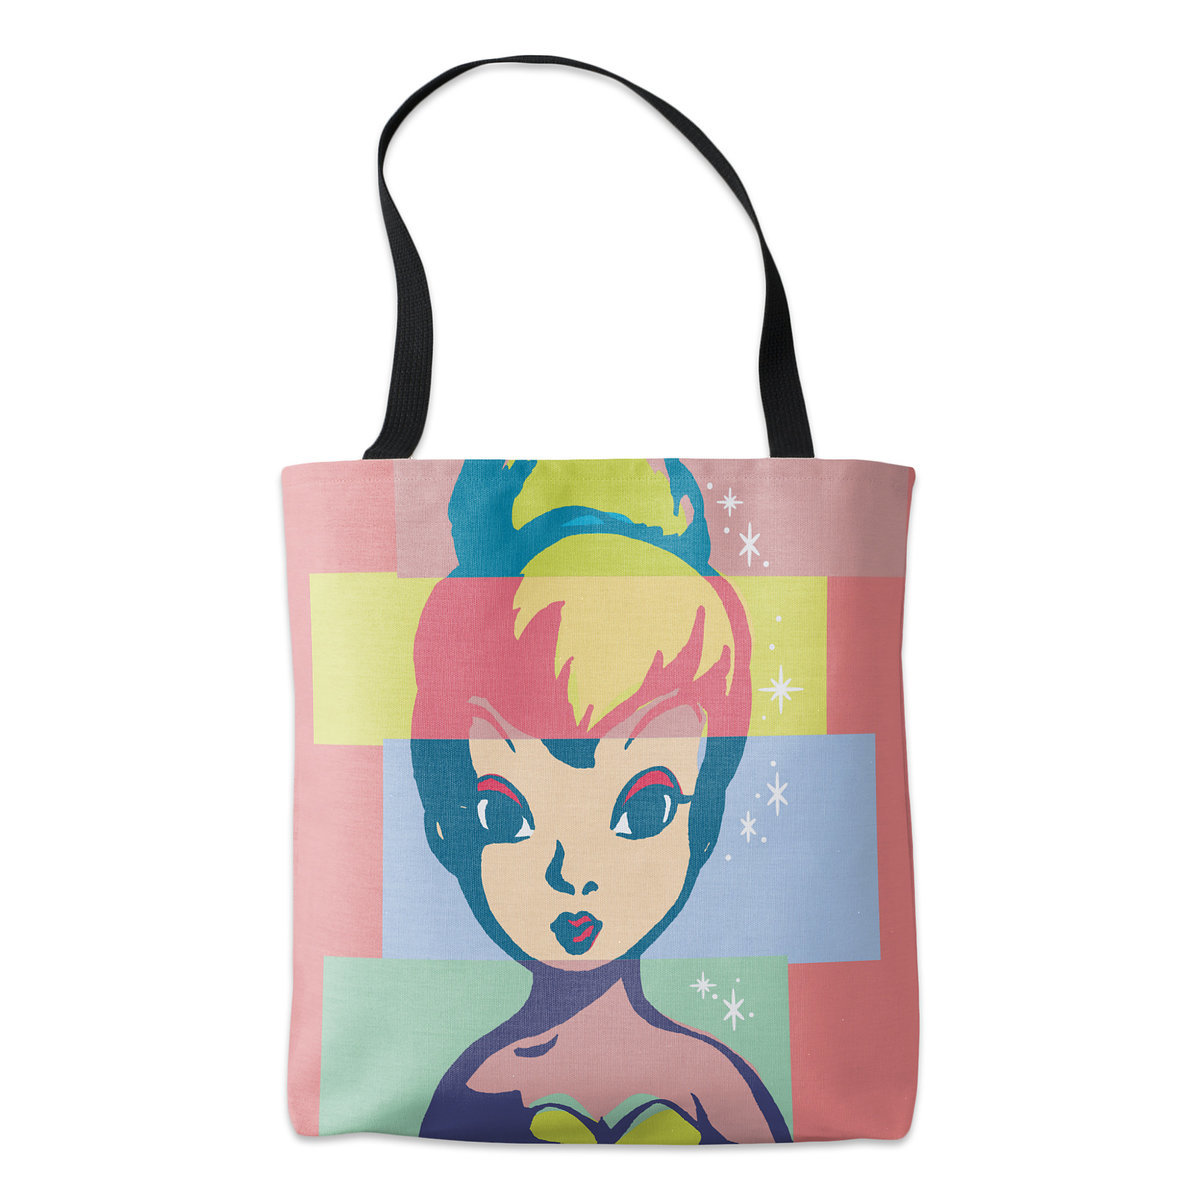 Adorable Tote Bags at shopDisney! 7